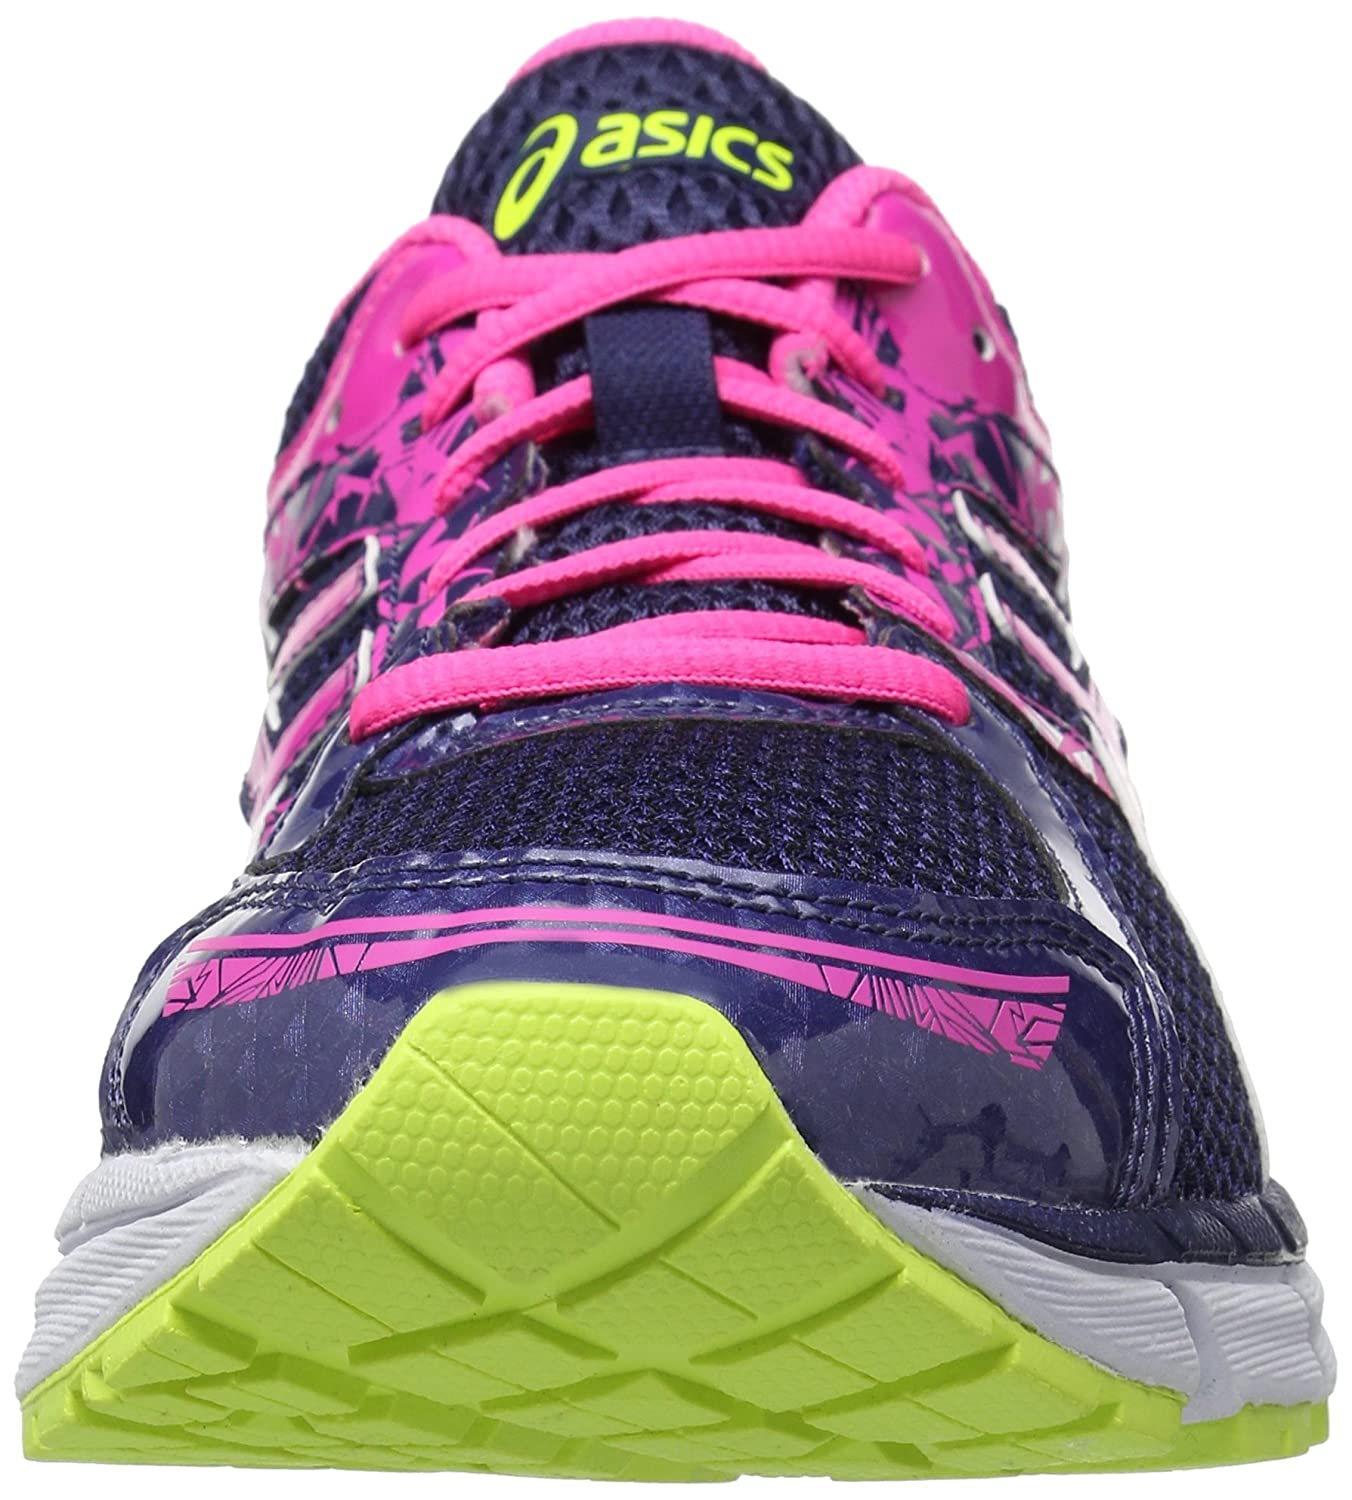 Zapato deportivo ASICS mujer Gel Excite deportivo Gel 3 pour Gel Excite mujer deportivo cbbe881 - resepmasakannusantara.website